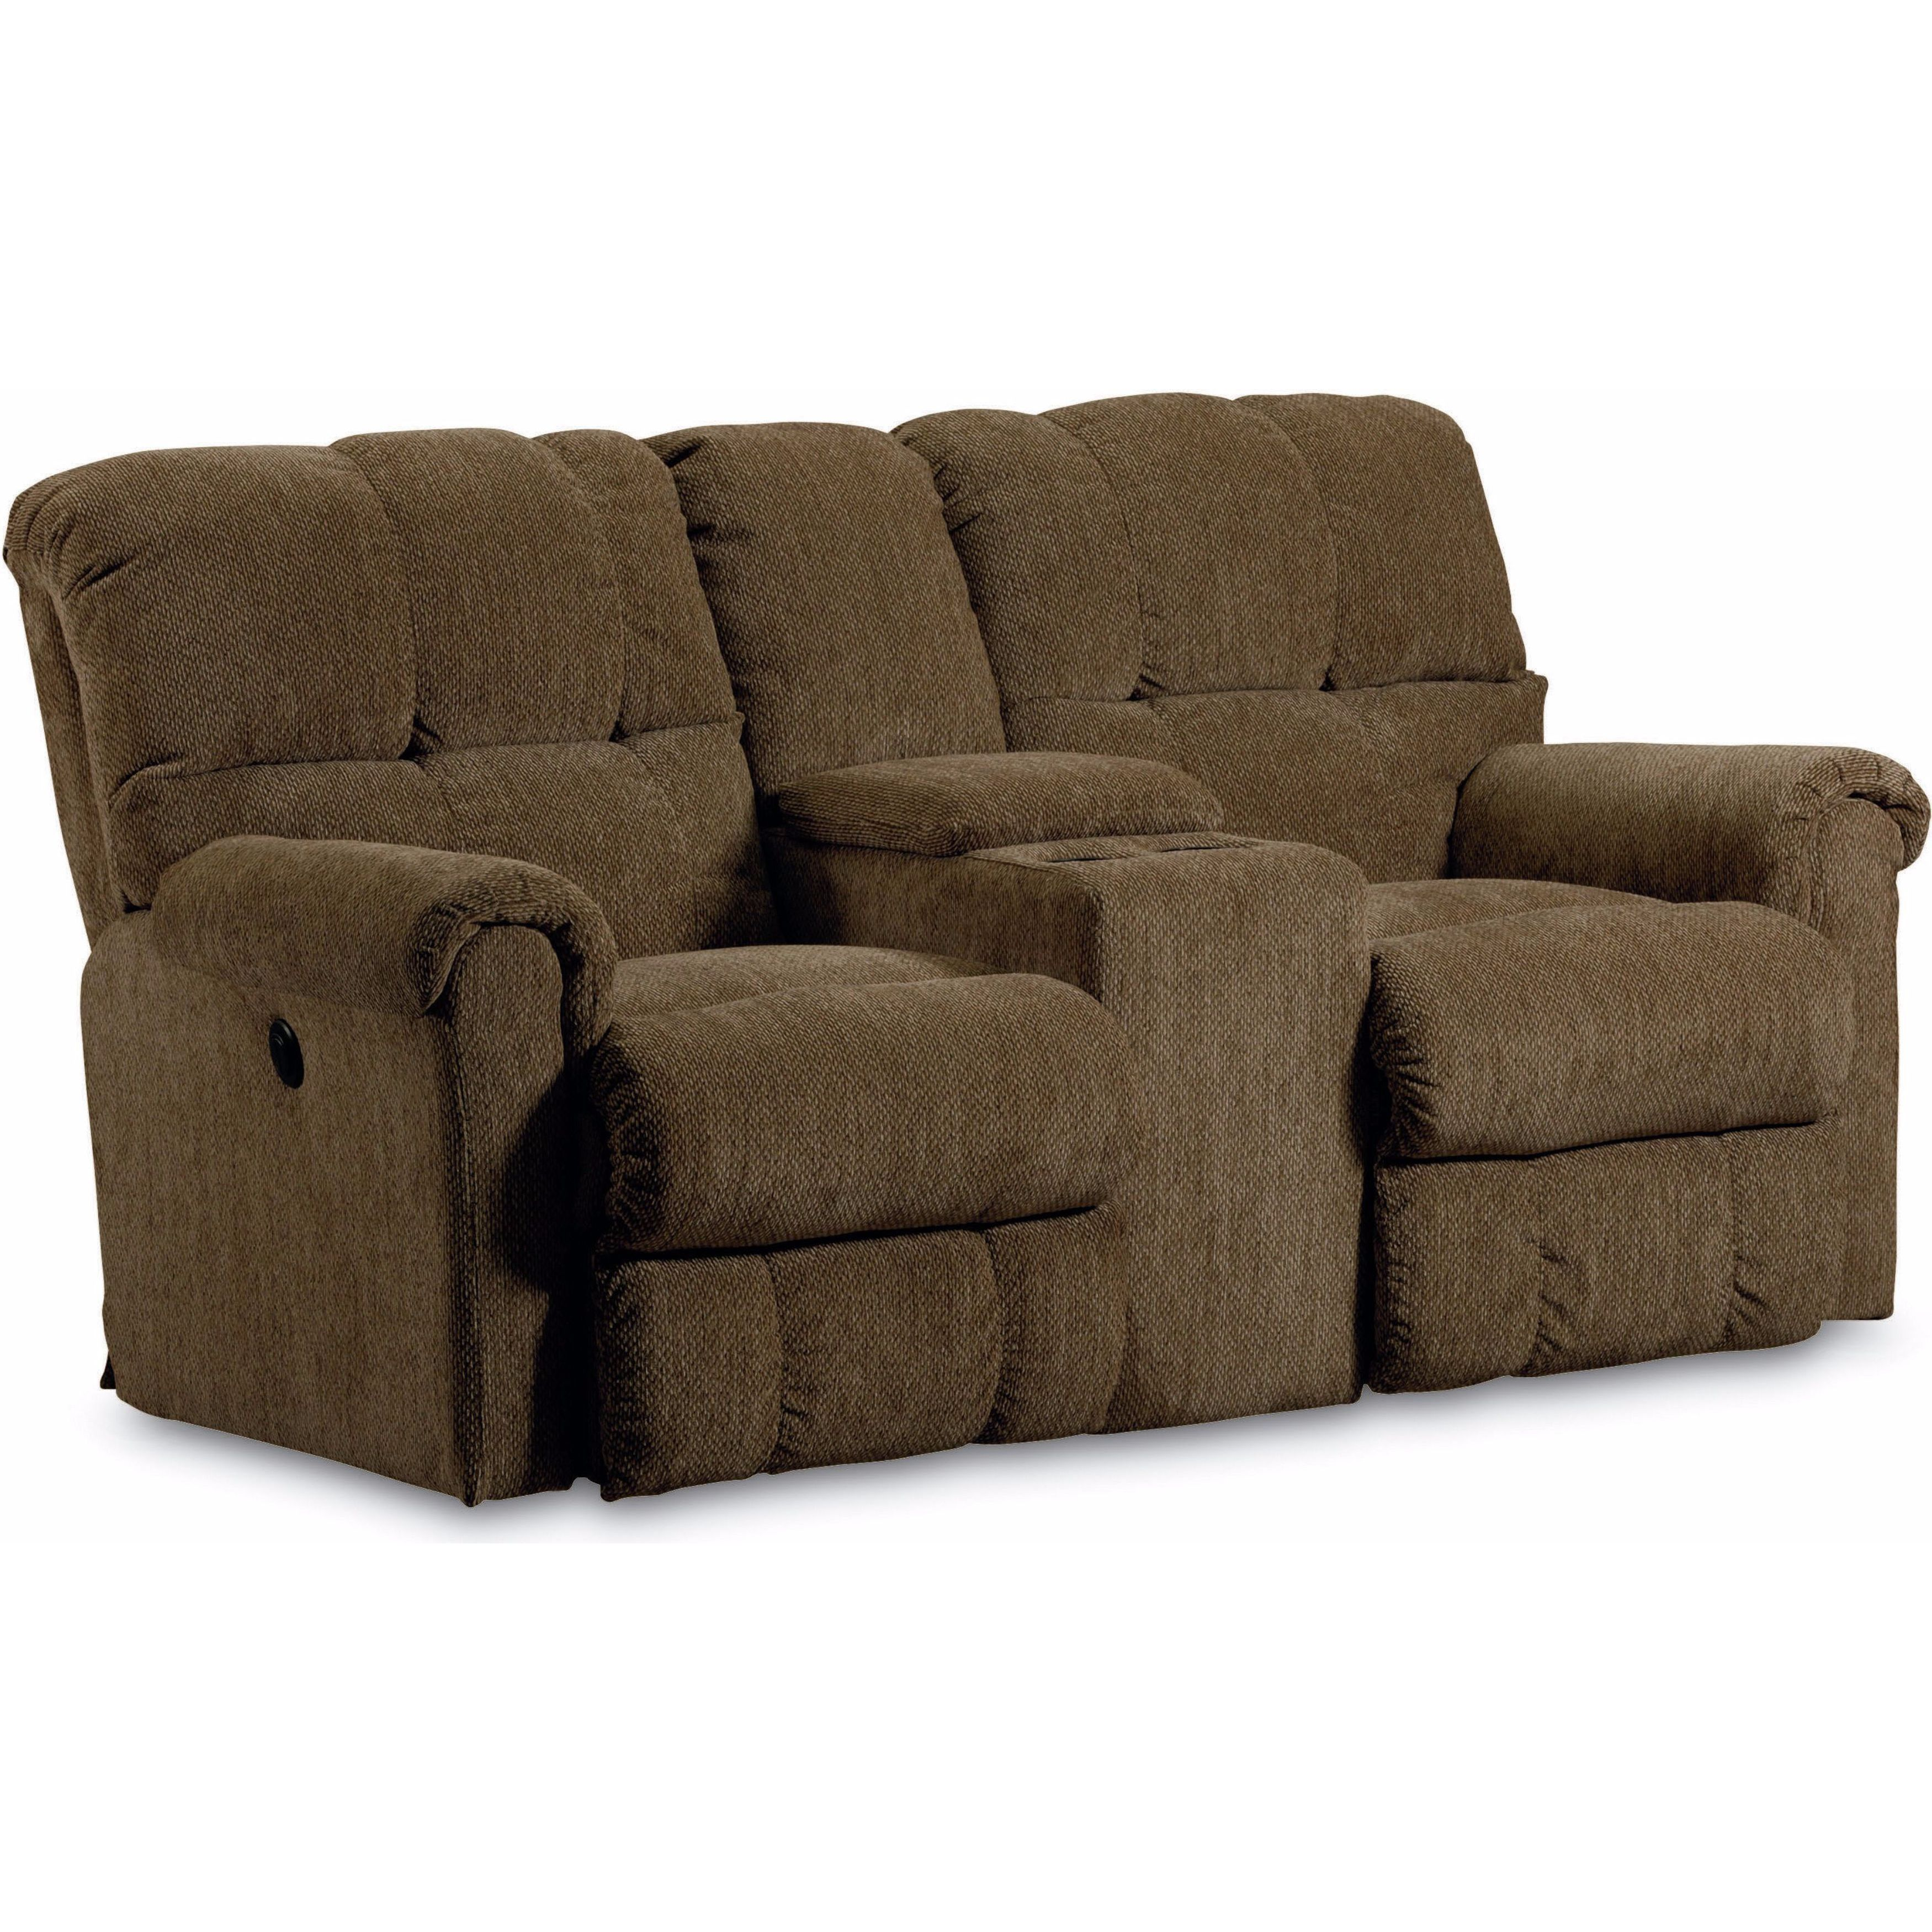 Lane FurnitureGriffin Double Reclining Console Loveseat w...